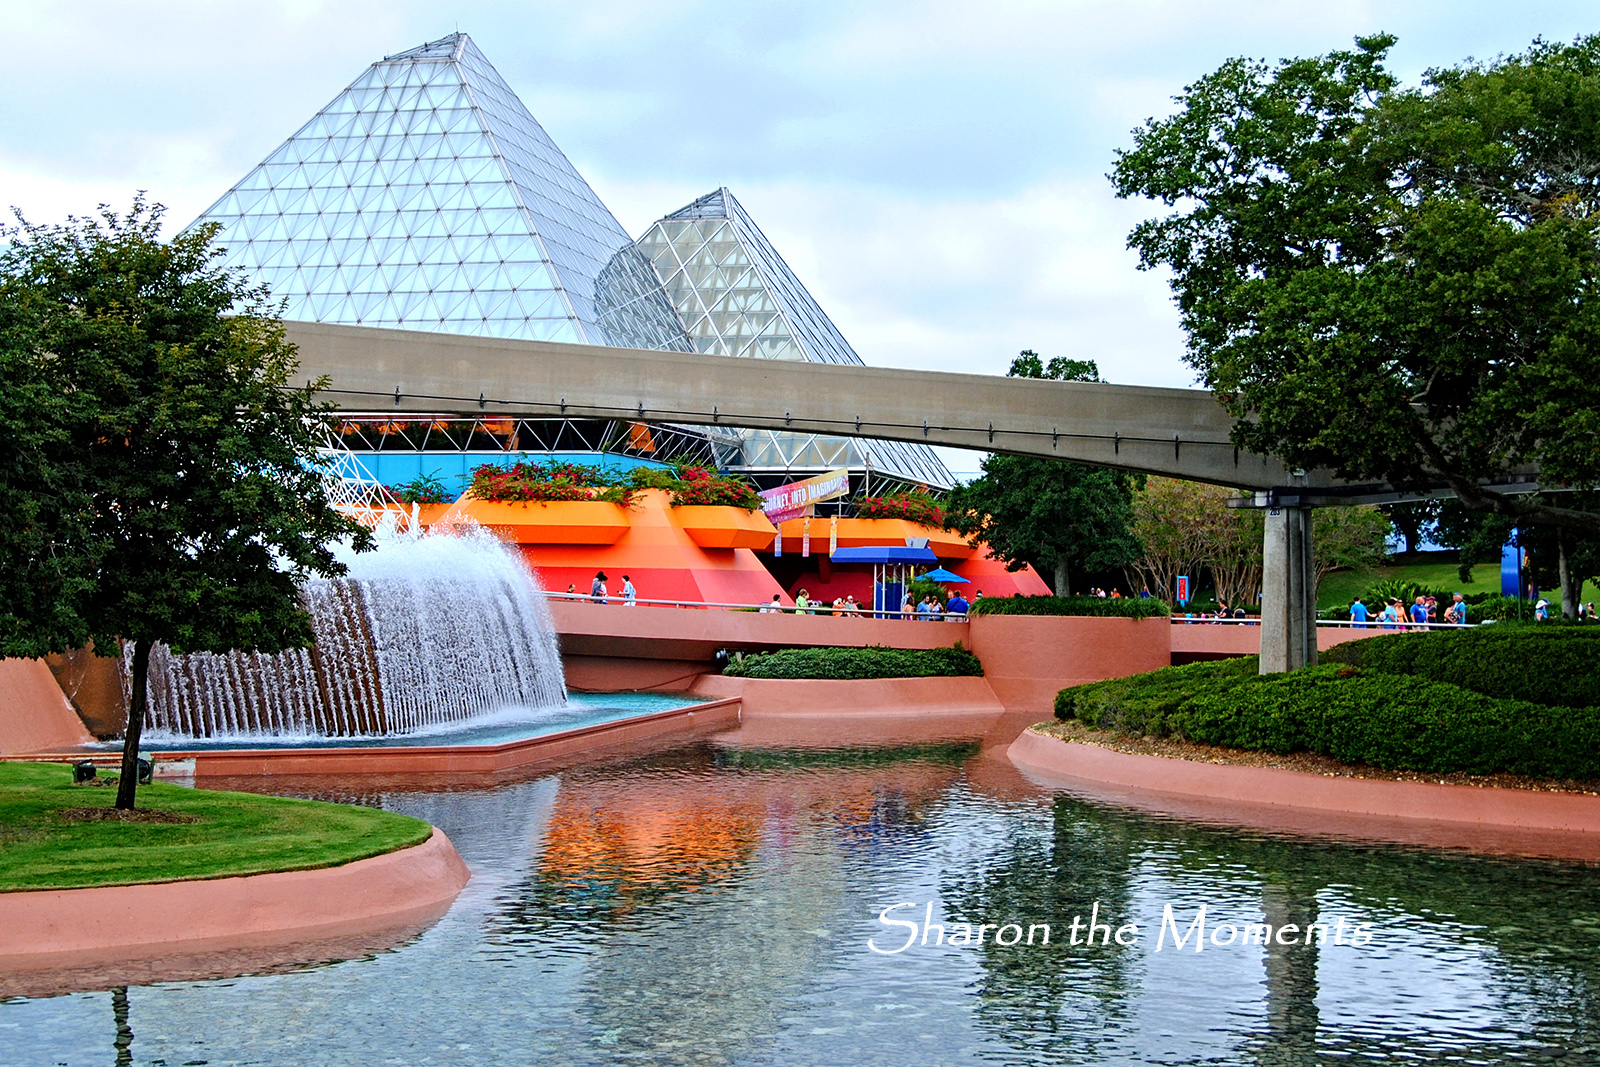 Walt Disney World Epcot October Vacation|Sharon the Moments Blog